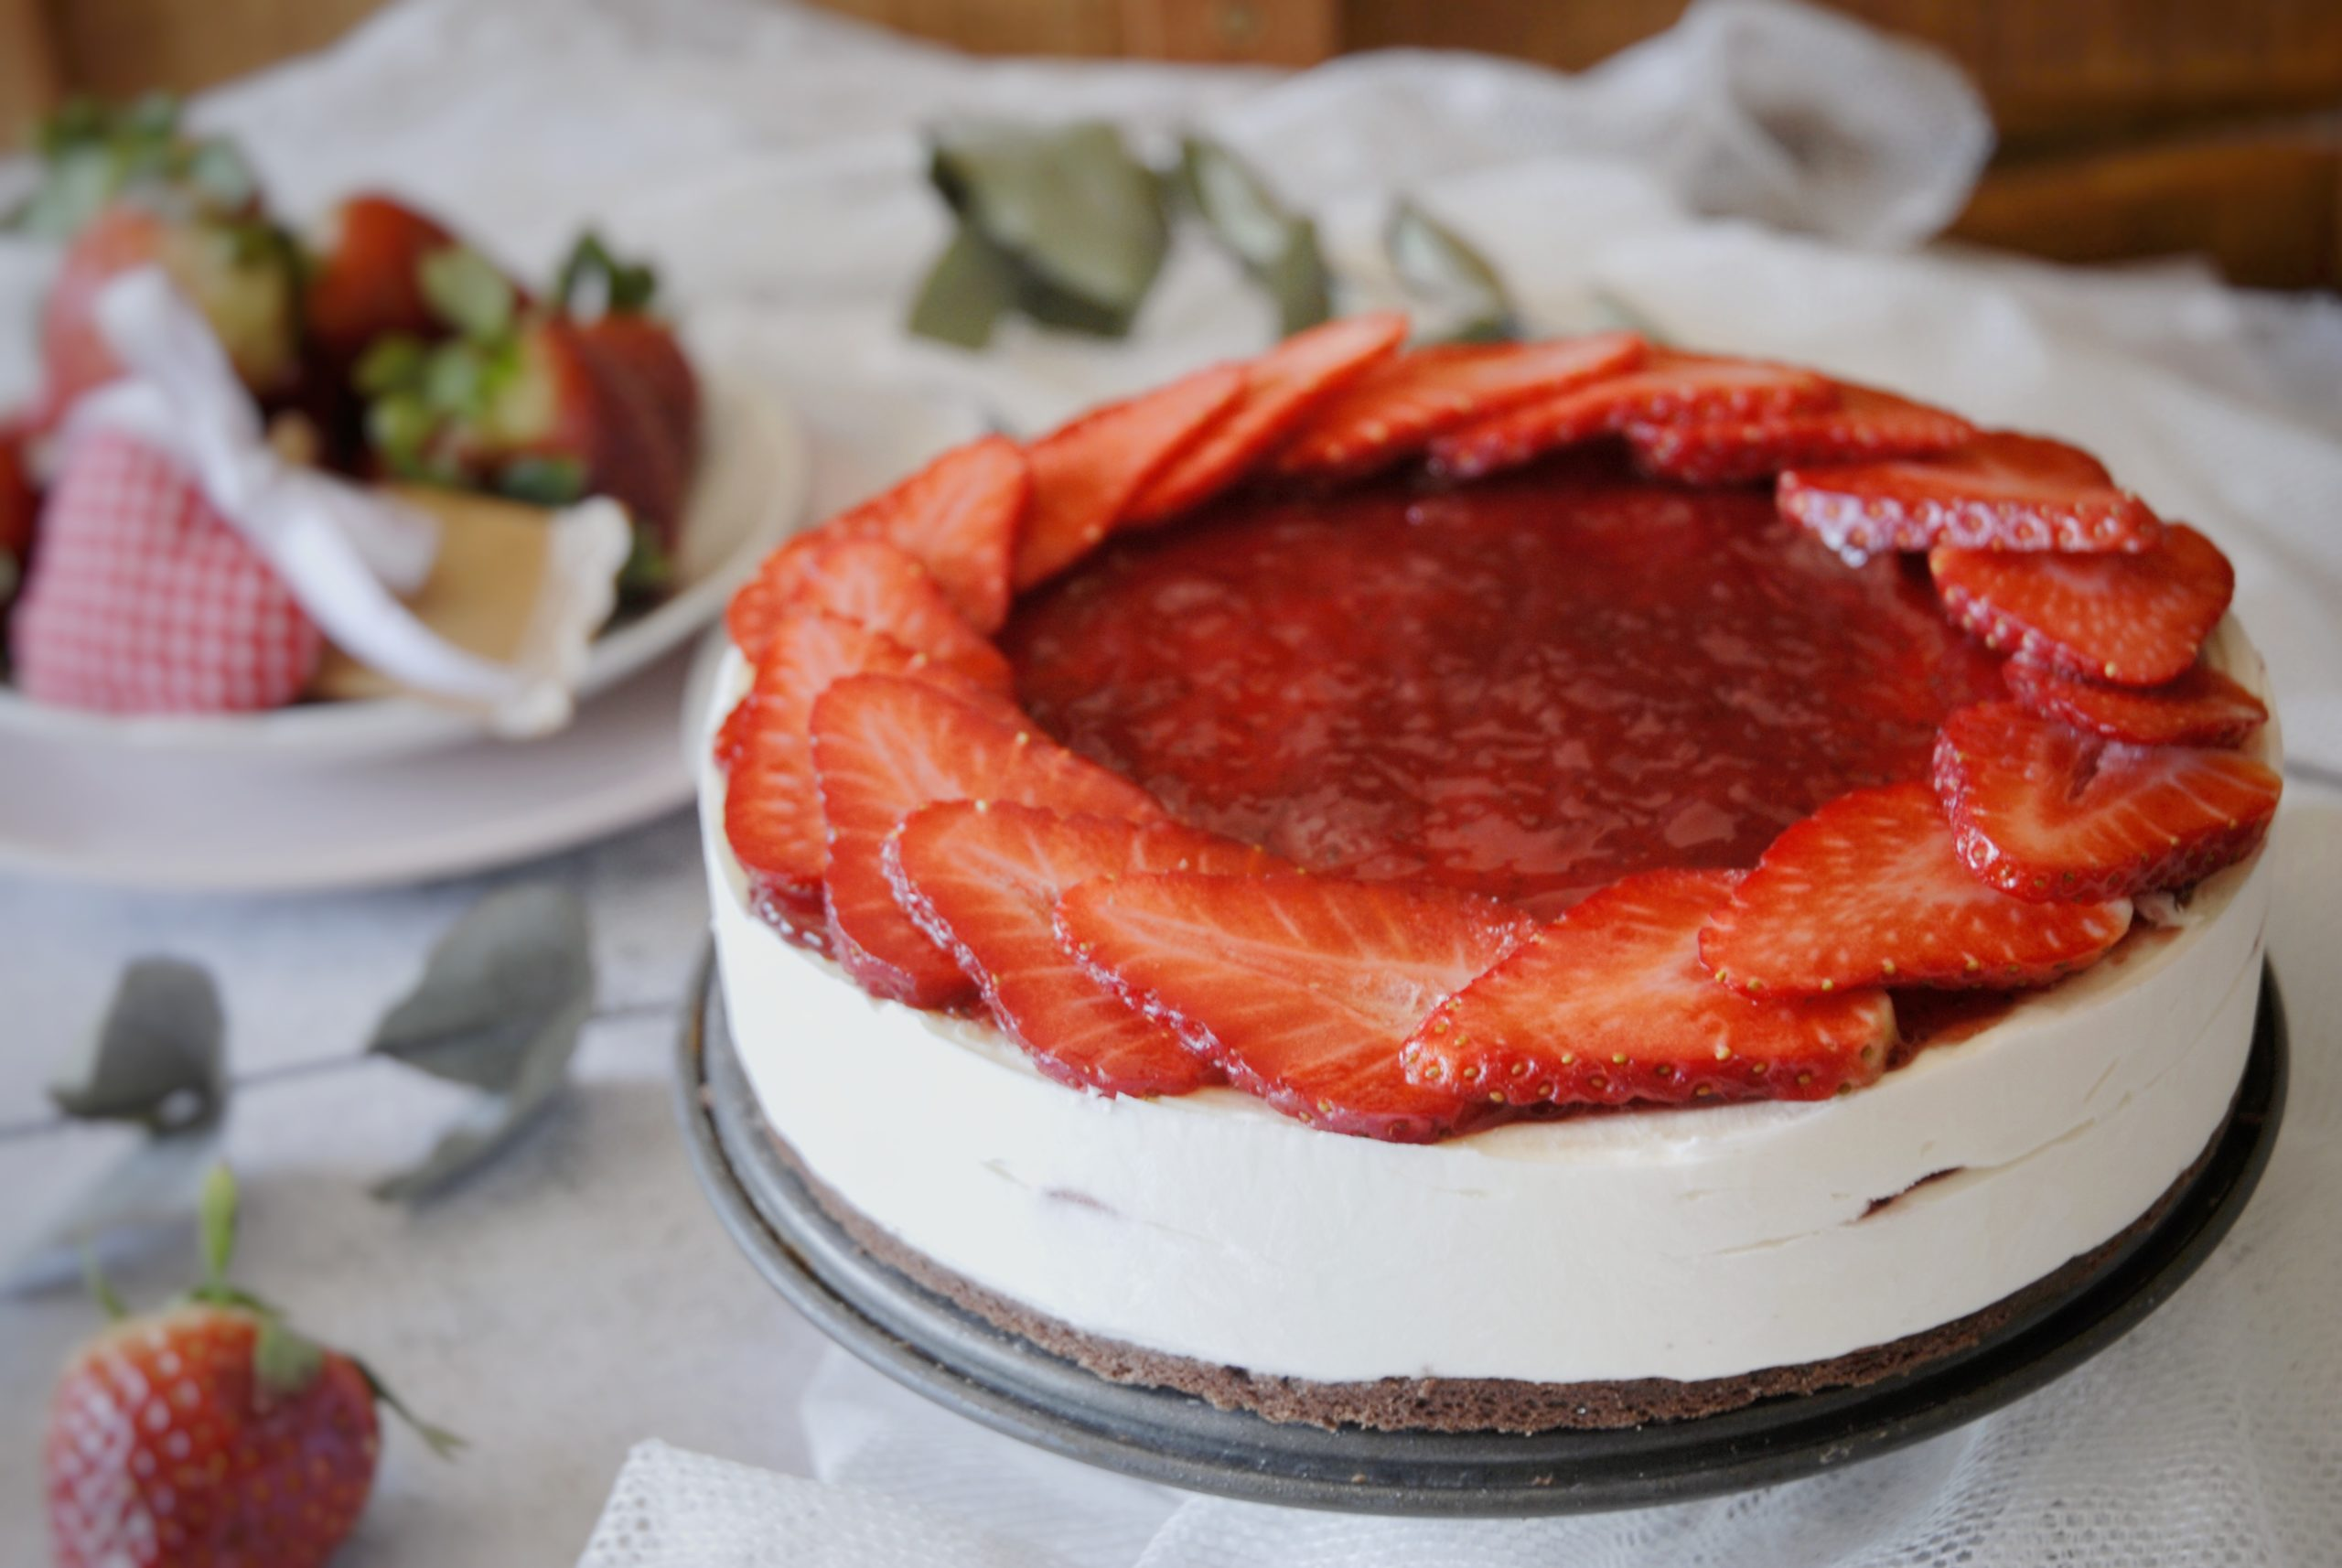 Cheesecake con ricotta e fragole